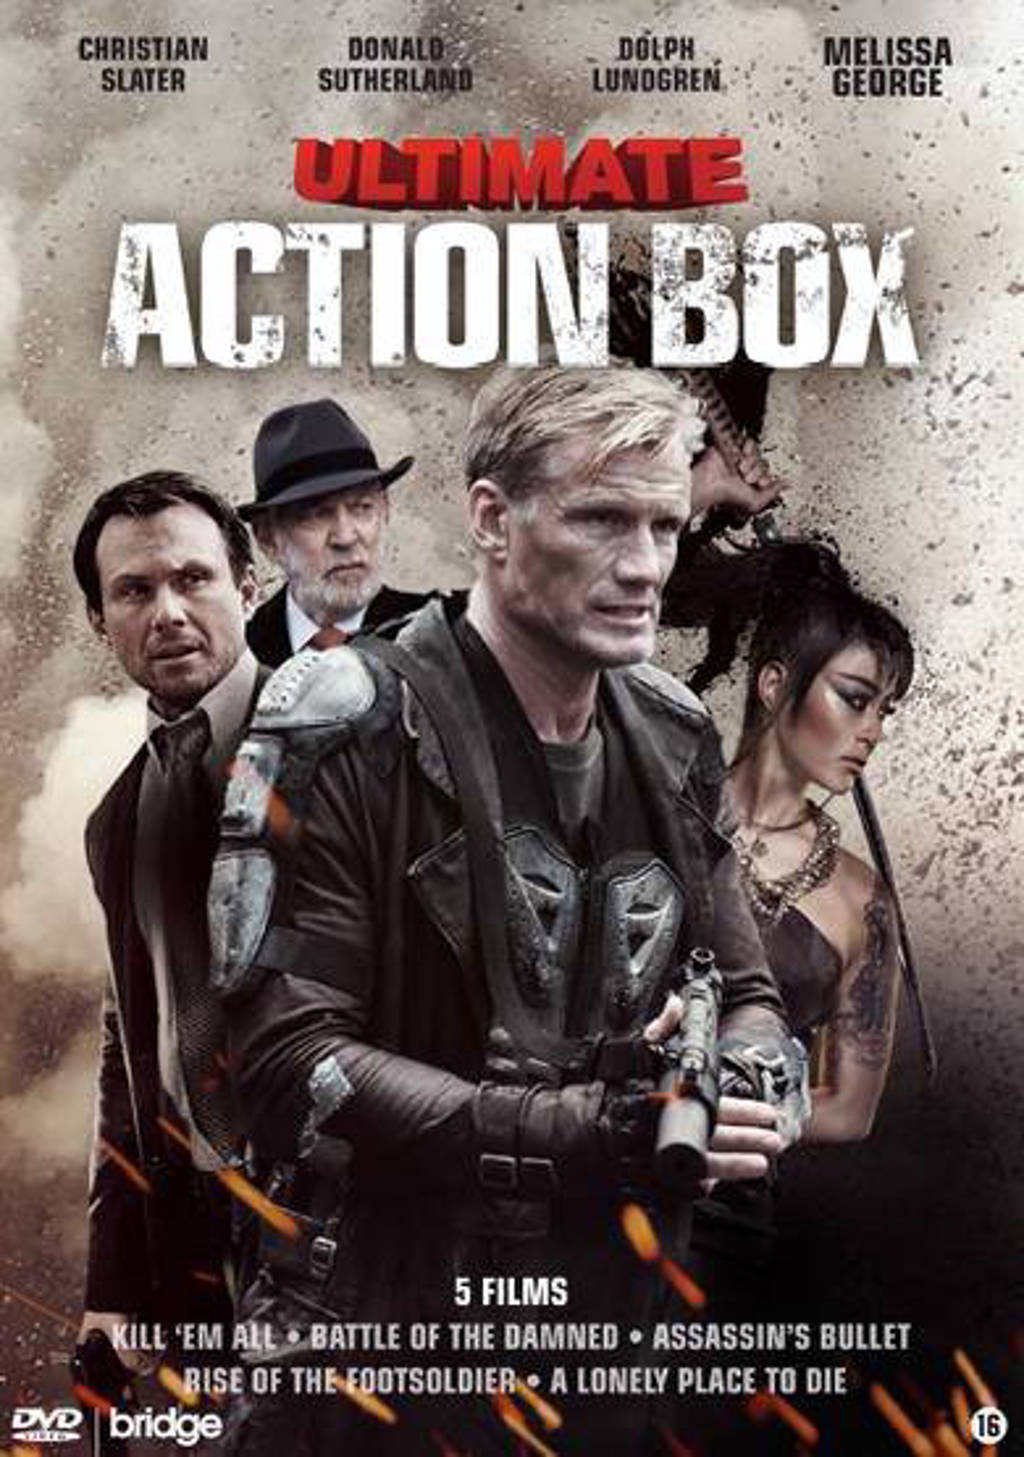 Ultimate action box 1 (DVD)